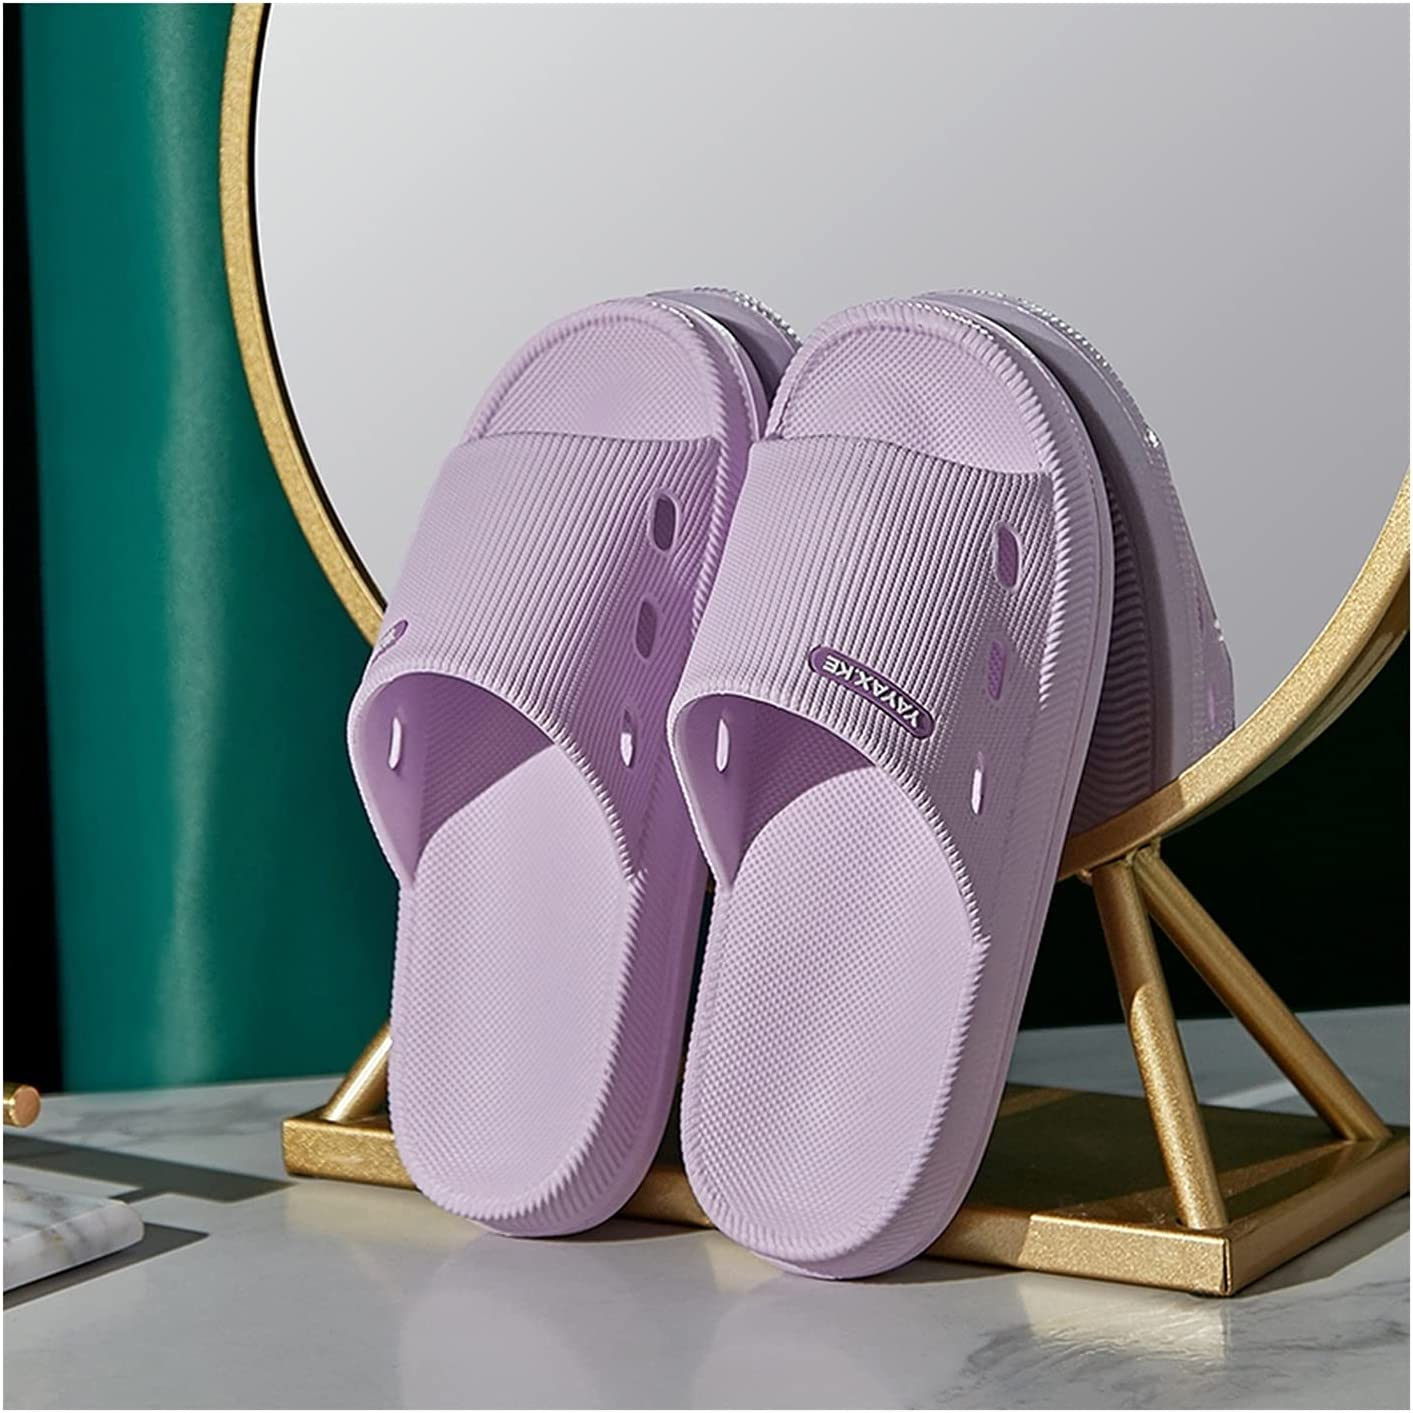 Tingting1992 Bath Tucson Mall Shoes Shower Slipper for discount Slippers Women's